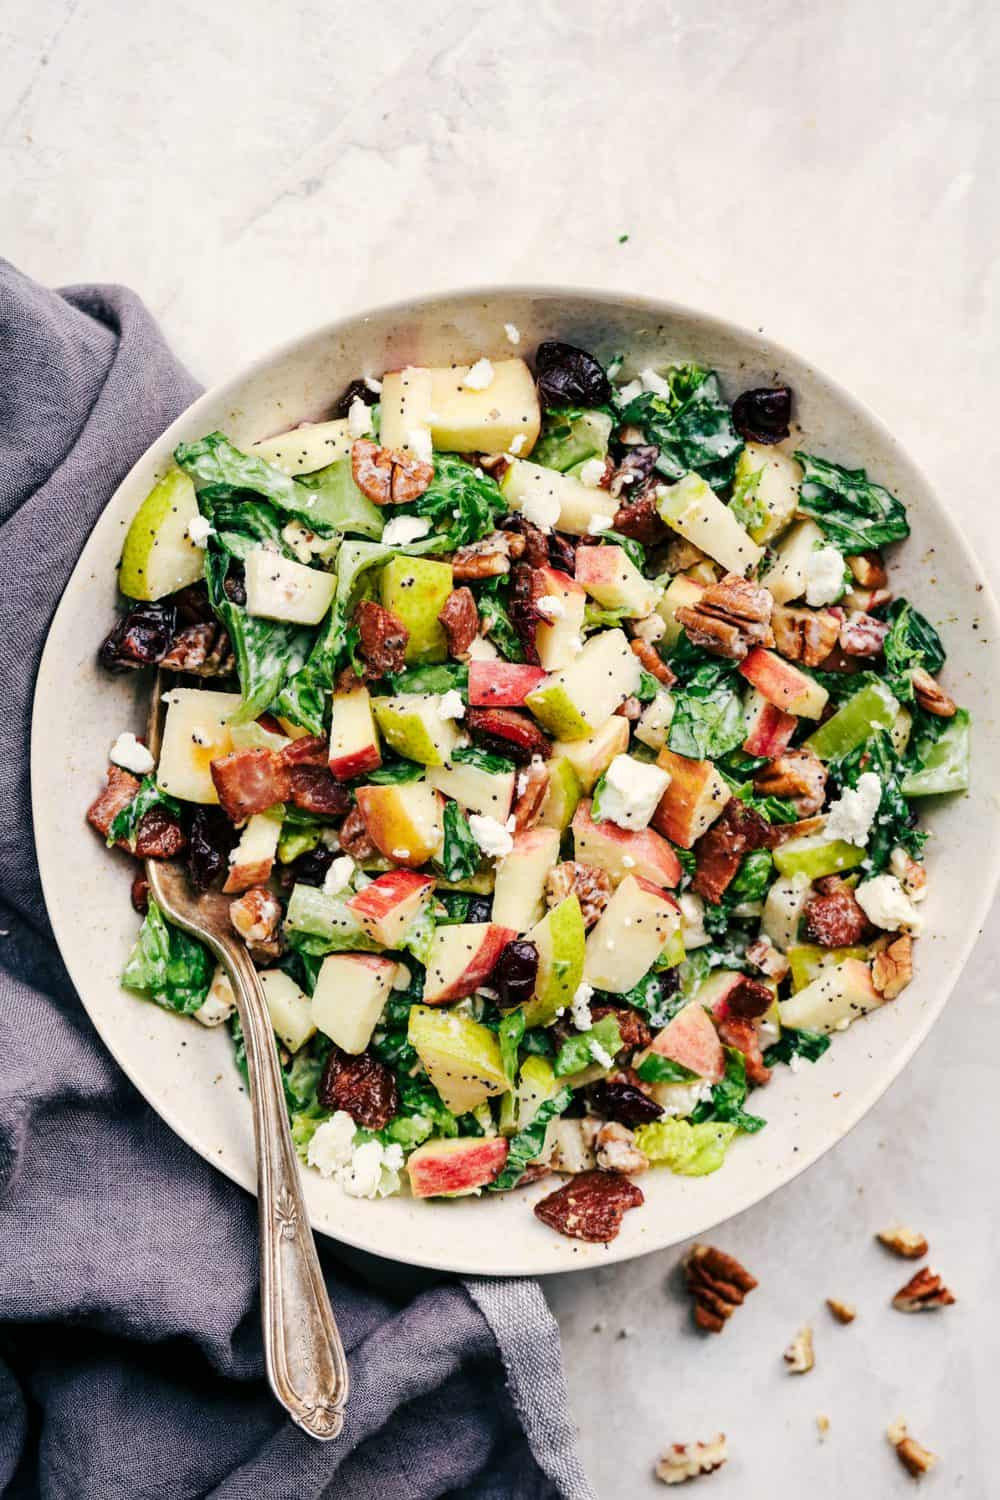 Fall Salad Dressings  Autumn Chopped Salad with Creamy Poppyseed Dressing